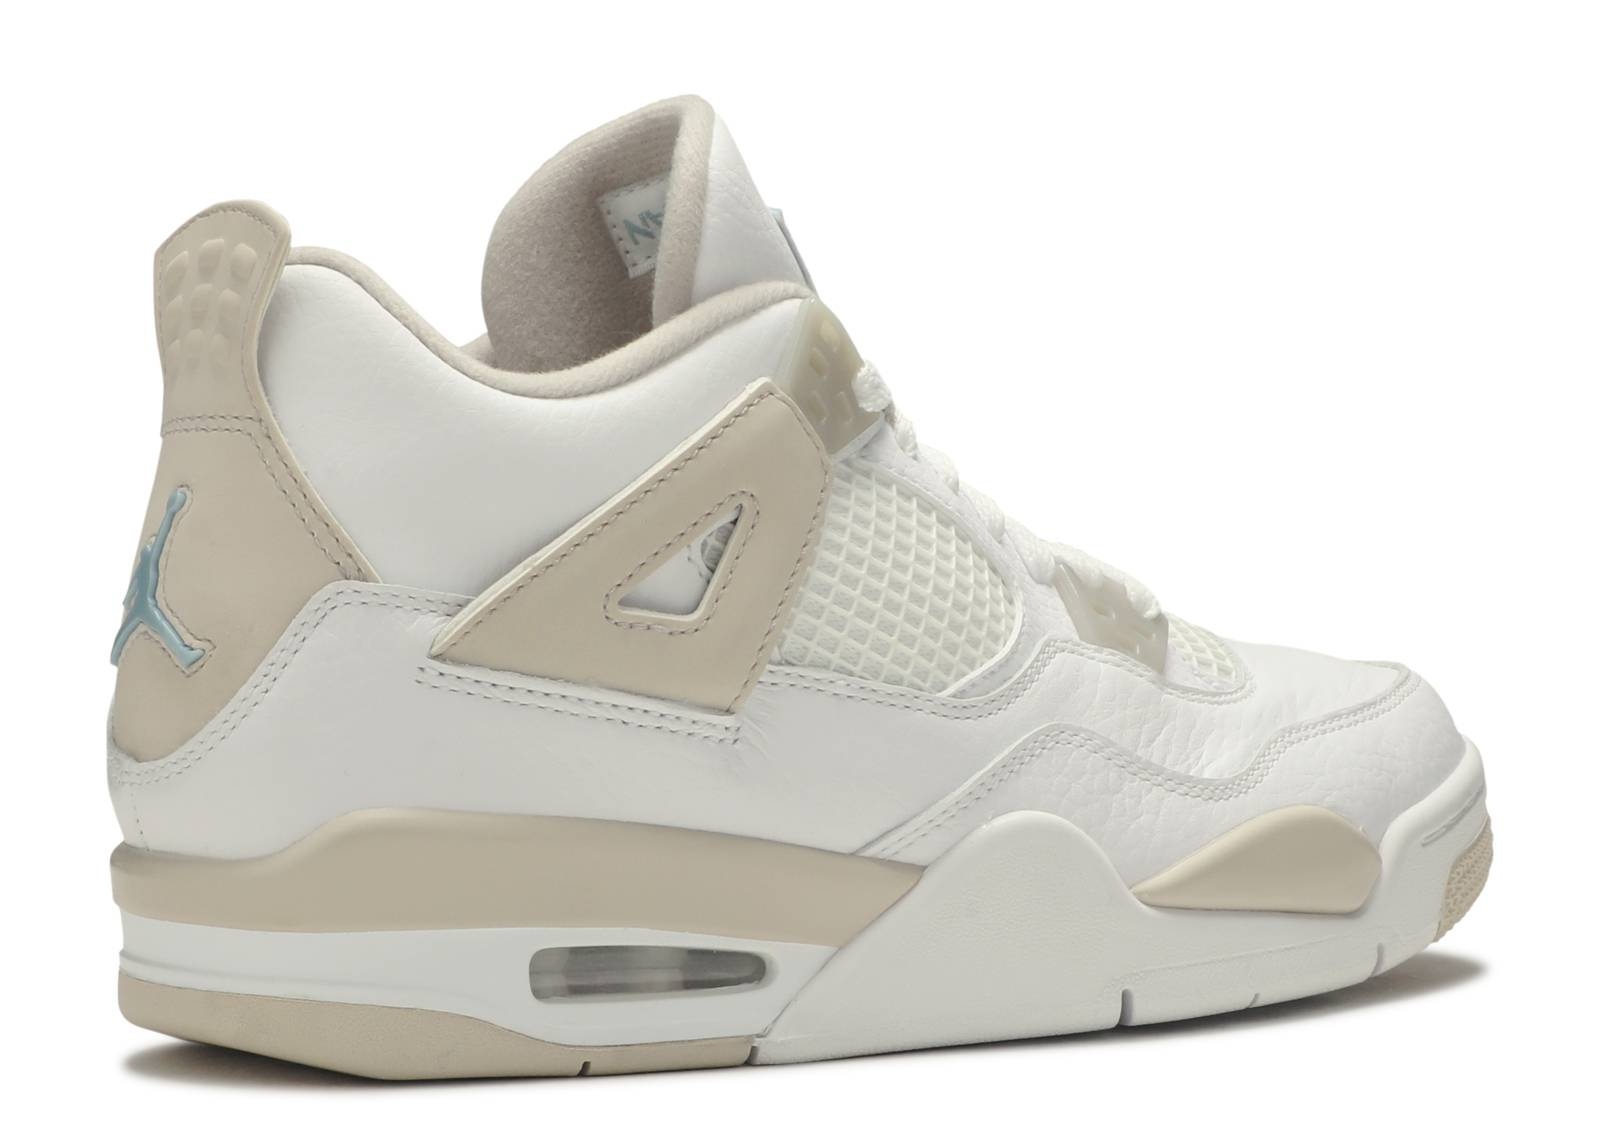 resistencia tortura Conectado  Air Jordan 4 Retro GS 'Linen' - Air Jordan - 487724 118 - white/boarder  blue-light sand | Flight Club